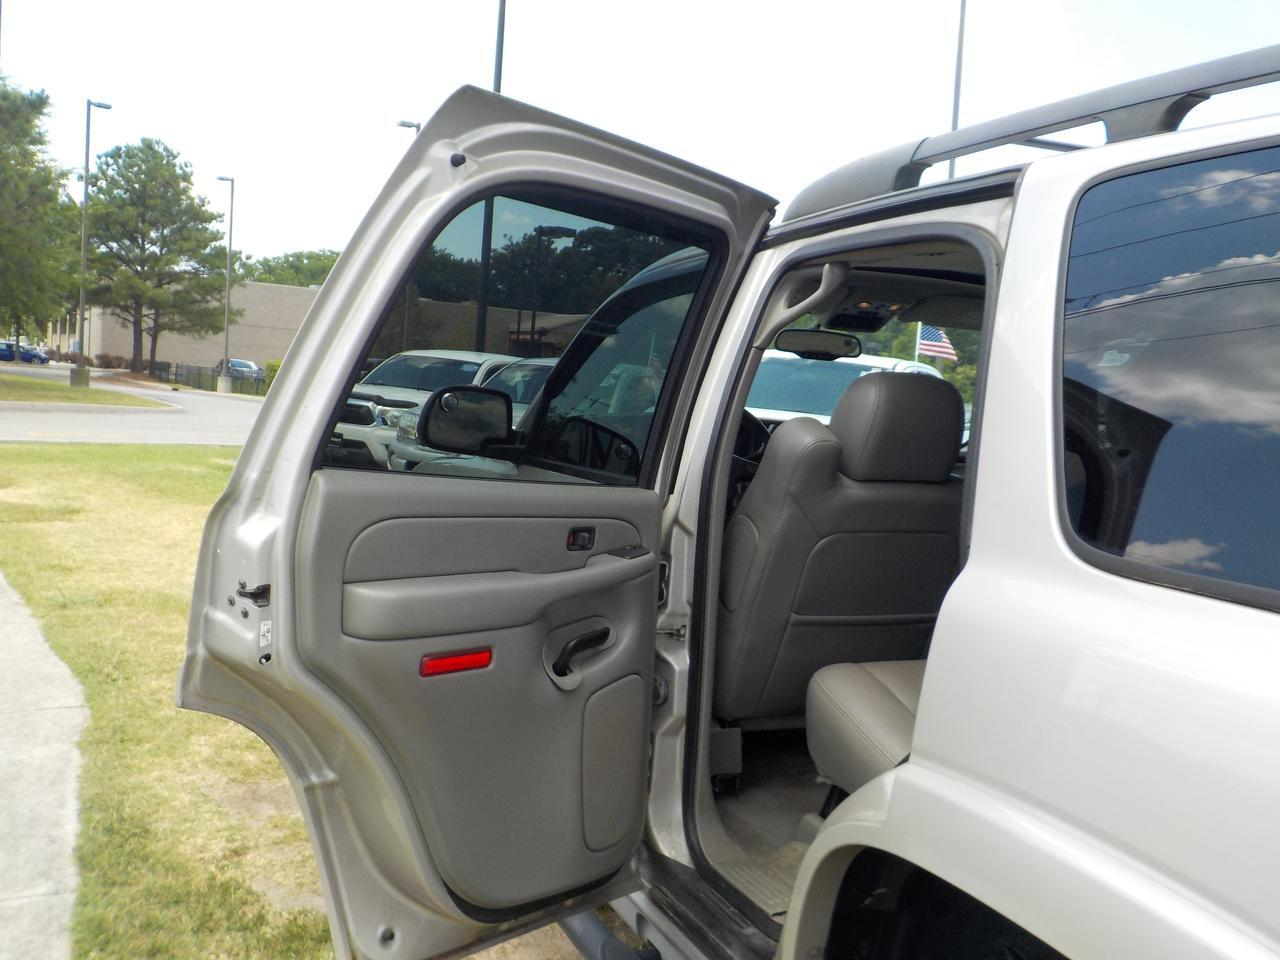 2005 CHEVROLET TAHOE LS 4X4, WHOLESALE TO THE PUBLIC, HEATED SEATS, 3RD ROW, TOW PKG, DVD PLAYER, BOSE SOUND! Virginia Beach VA